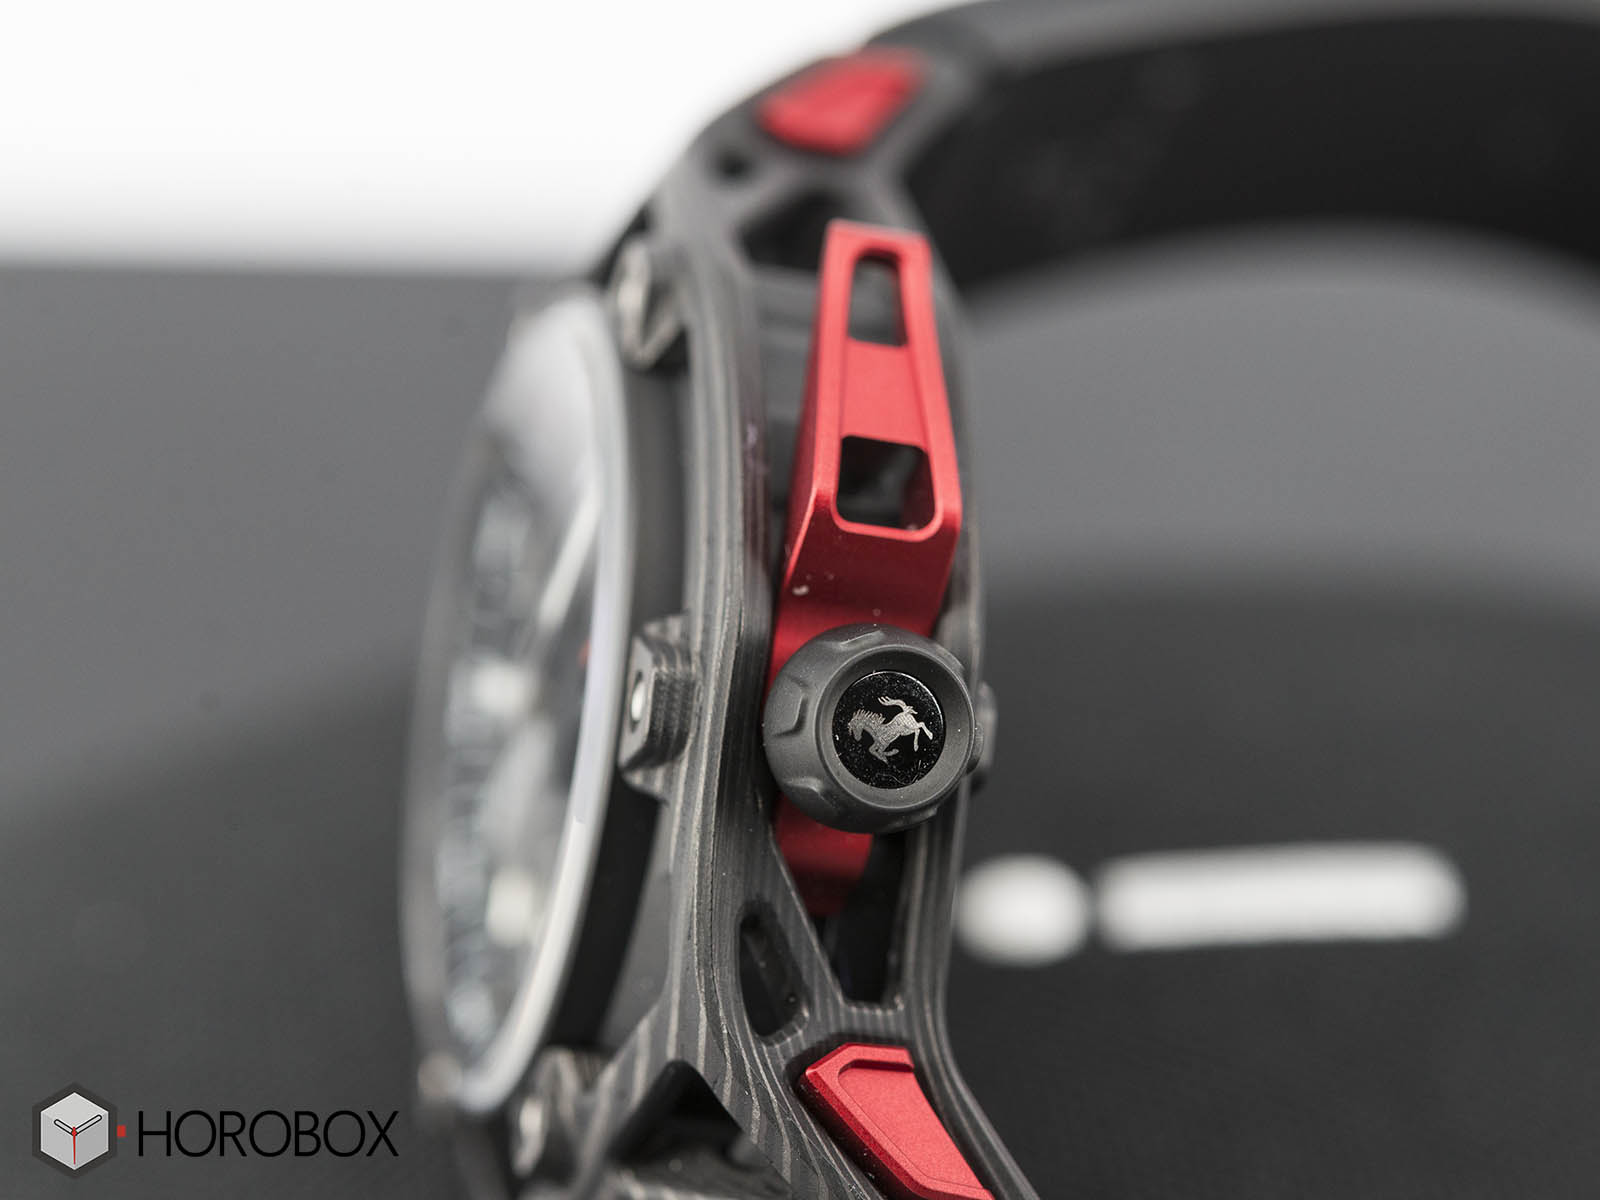 hublot-techframe-ferrari-70-years-tourbillon-chronograph-5-.jpg